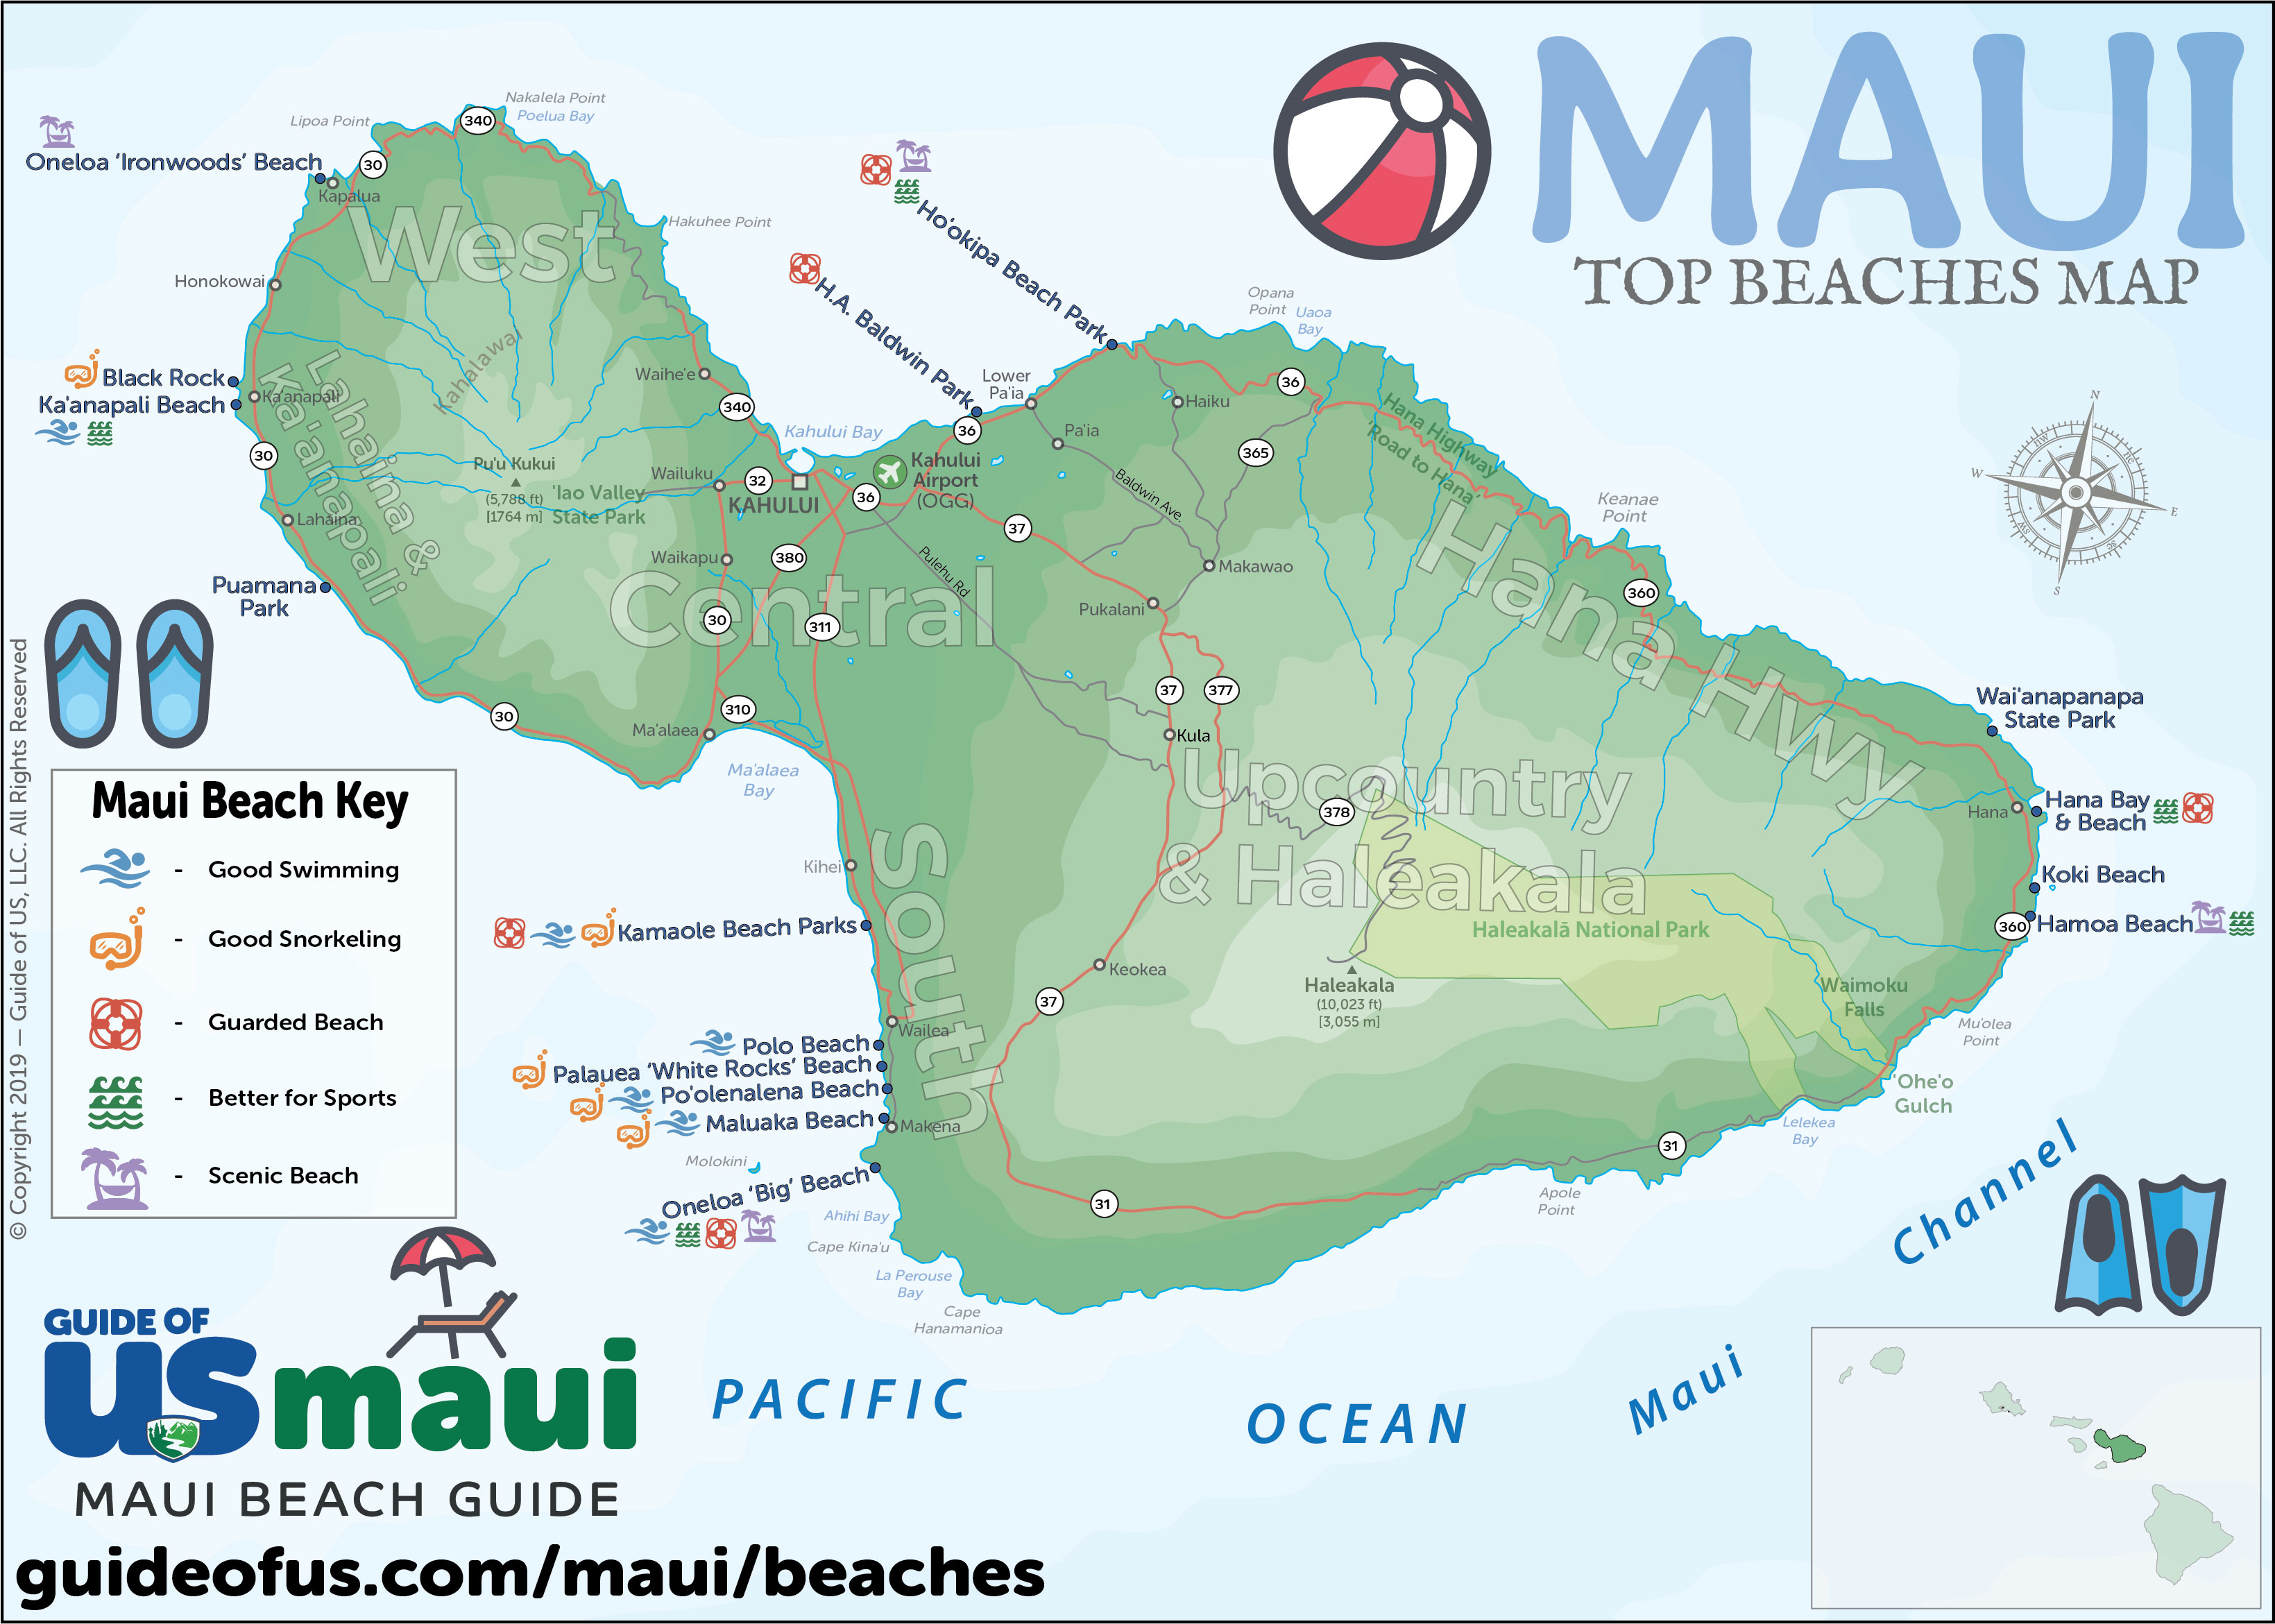 Maui Beach Guide 10 Best Beaches On Maui